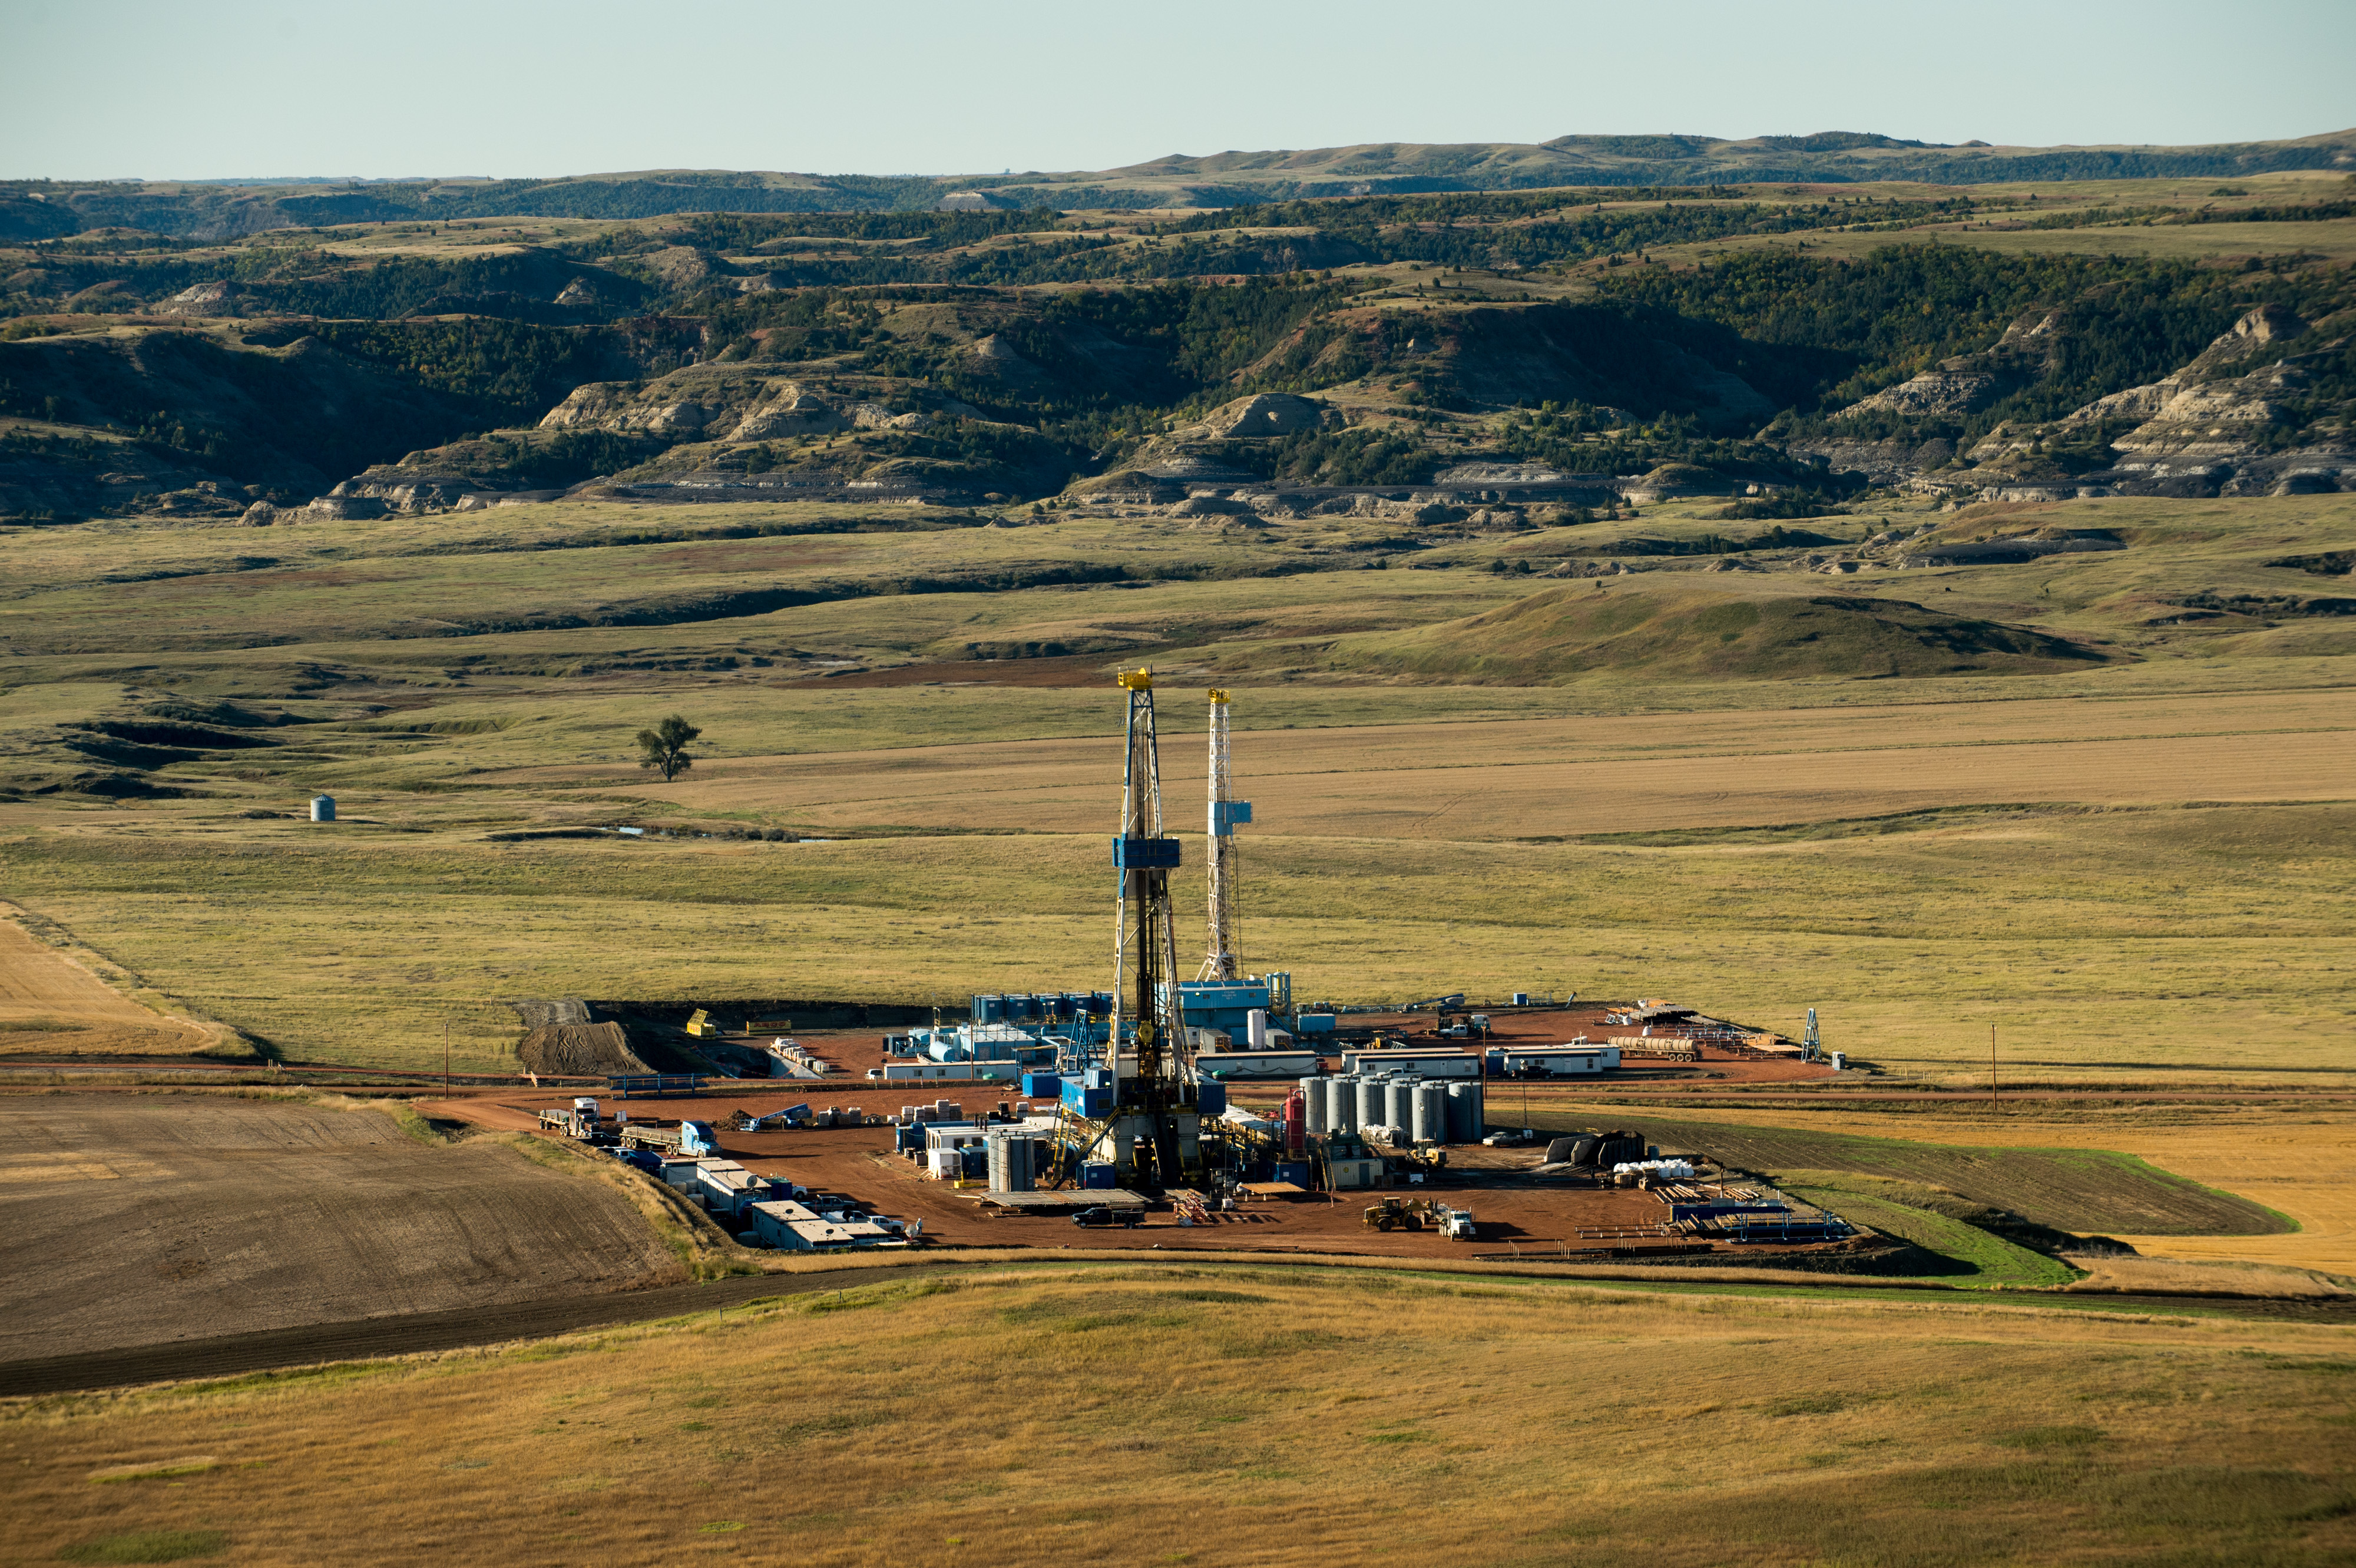 Photo of oil rigs sit just outside of Theodore Roosevelt National Park near Watford City, North Dakota.